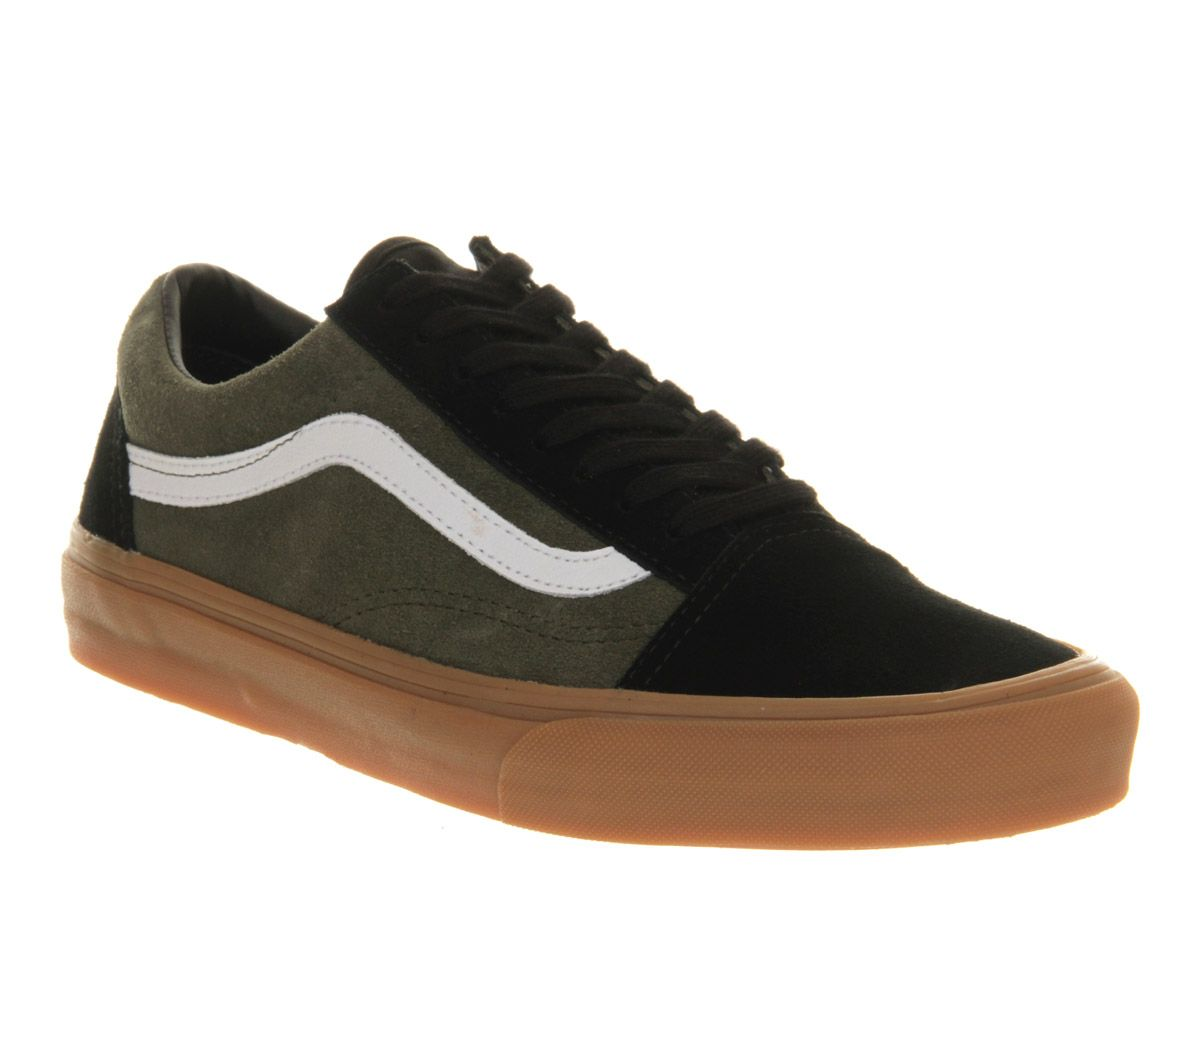 Old Skool | Vans old skool, Black suede, Old skool